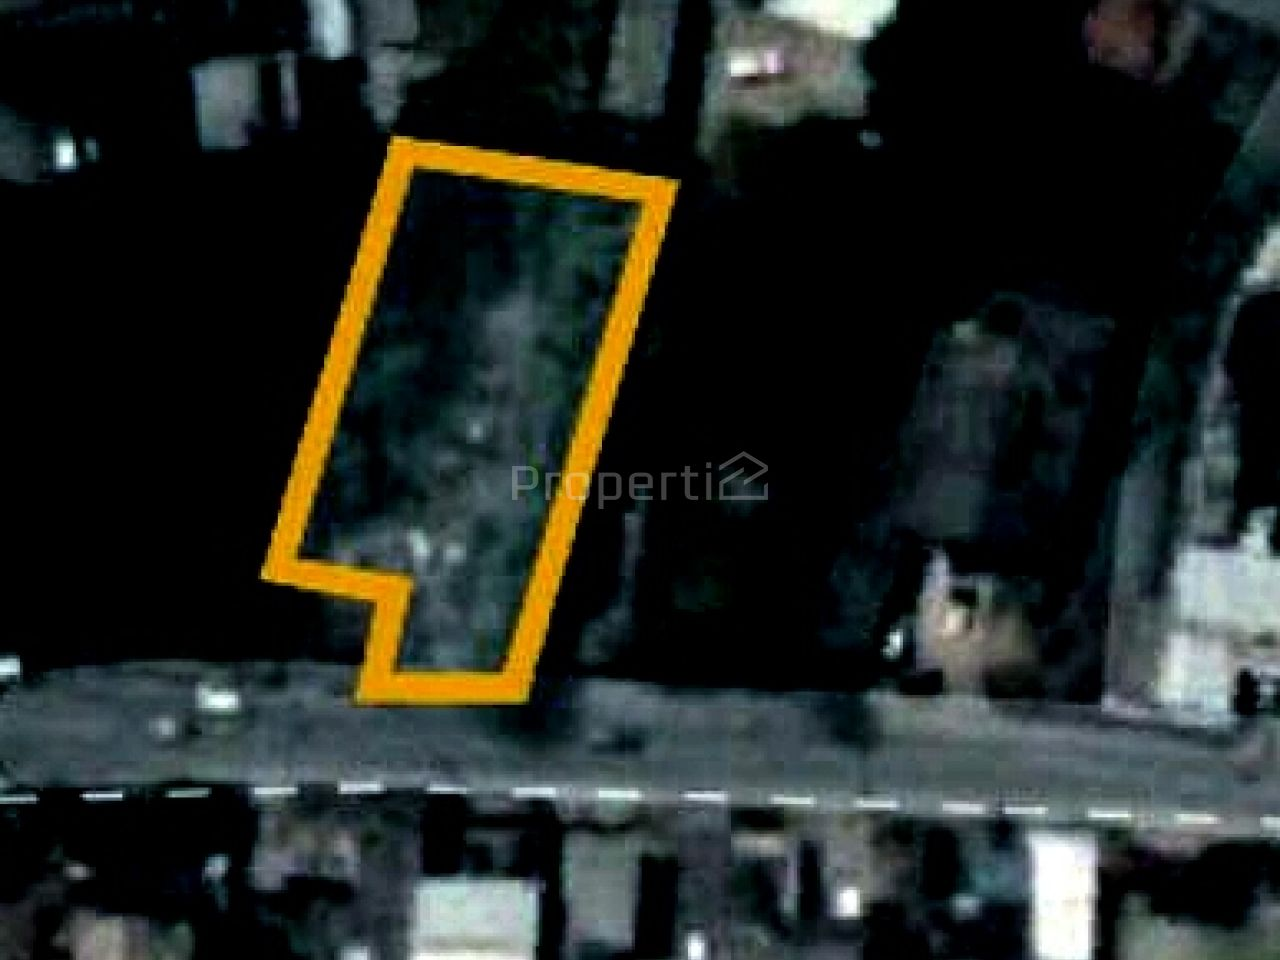 Commercial Land for Offices in Kalideres, Kalideres